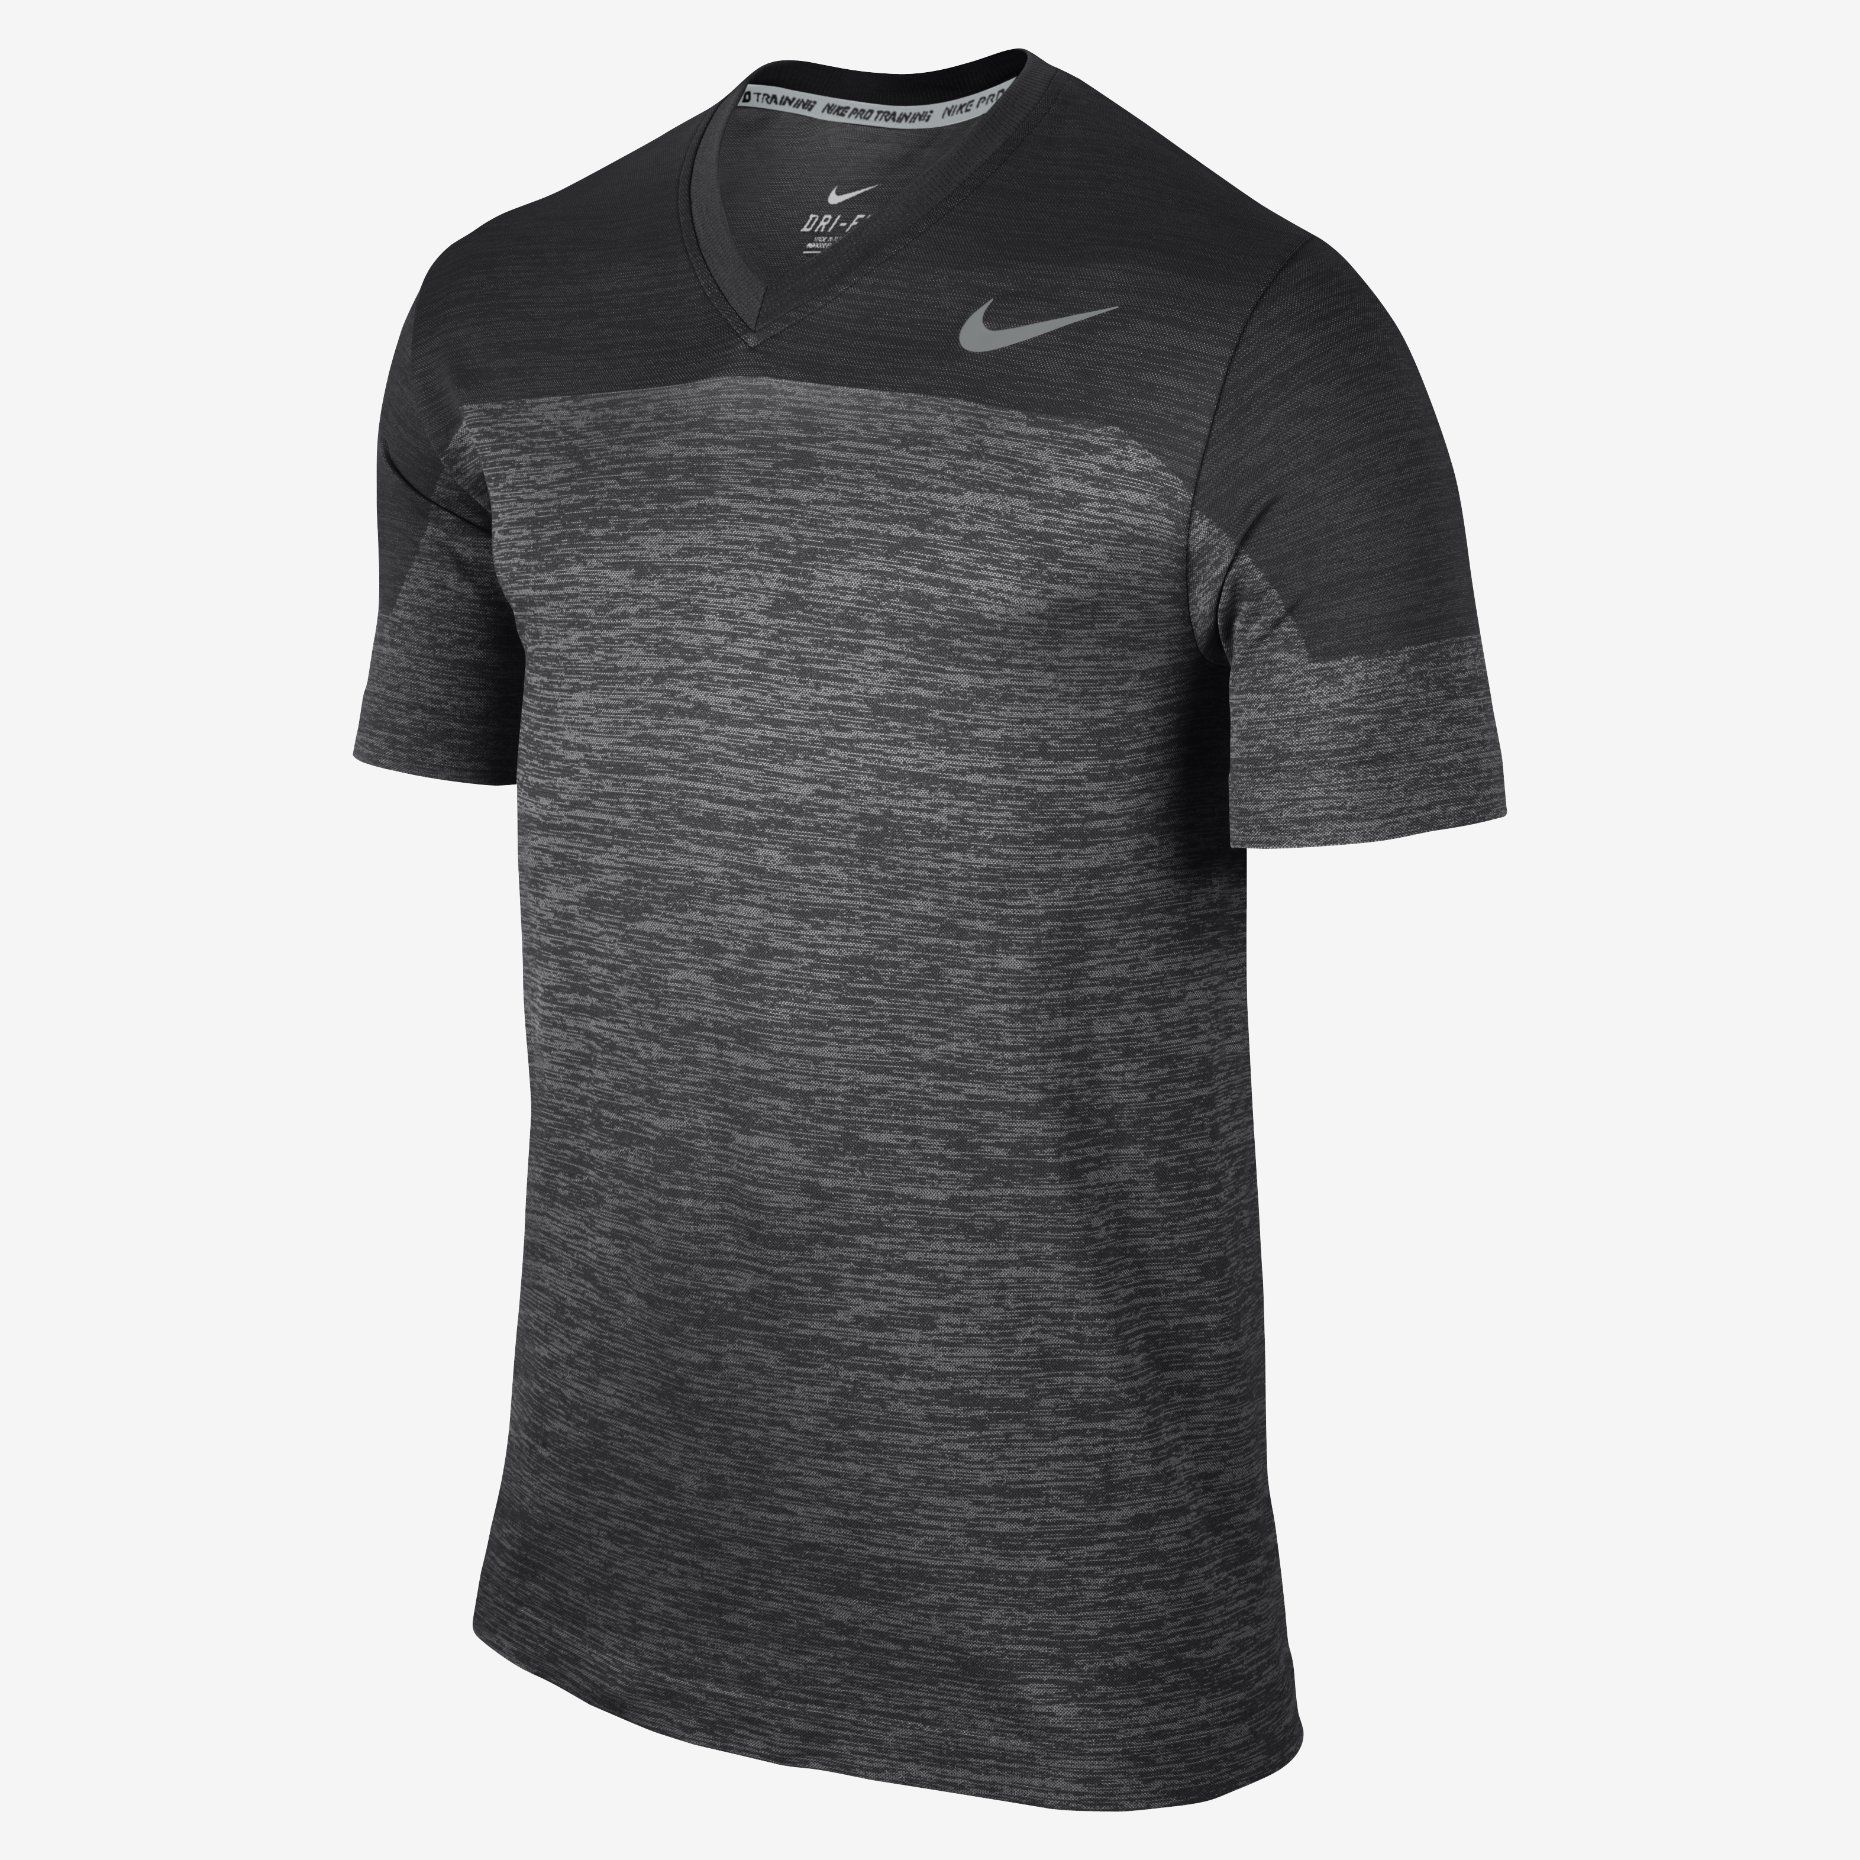 nike dri fit knit v neck men 39 s training shirt training. Black Bedroom Furniture Sets. Home Design Ideas